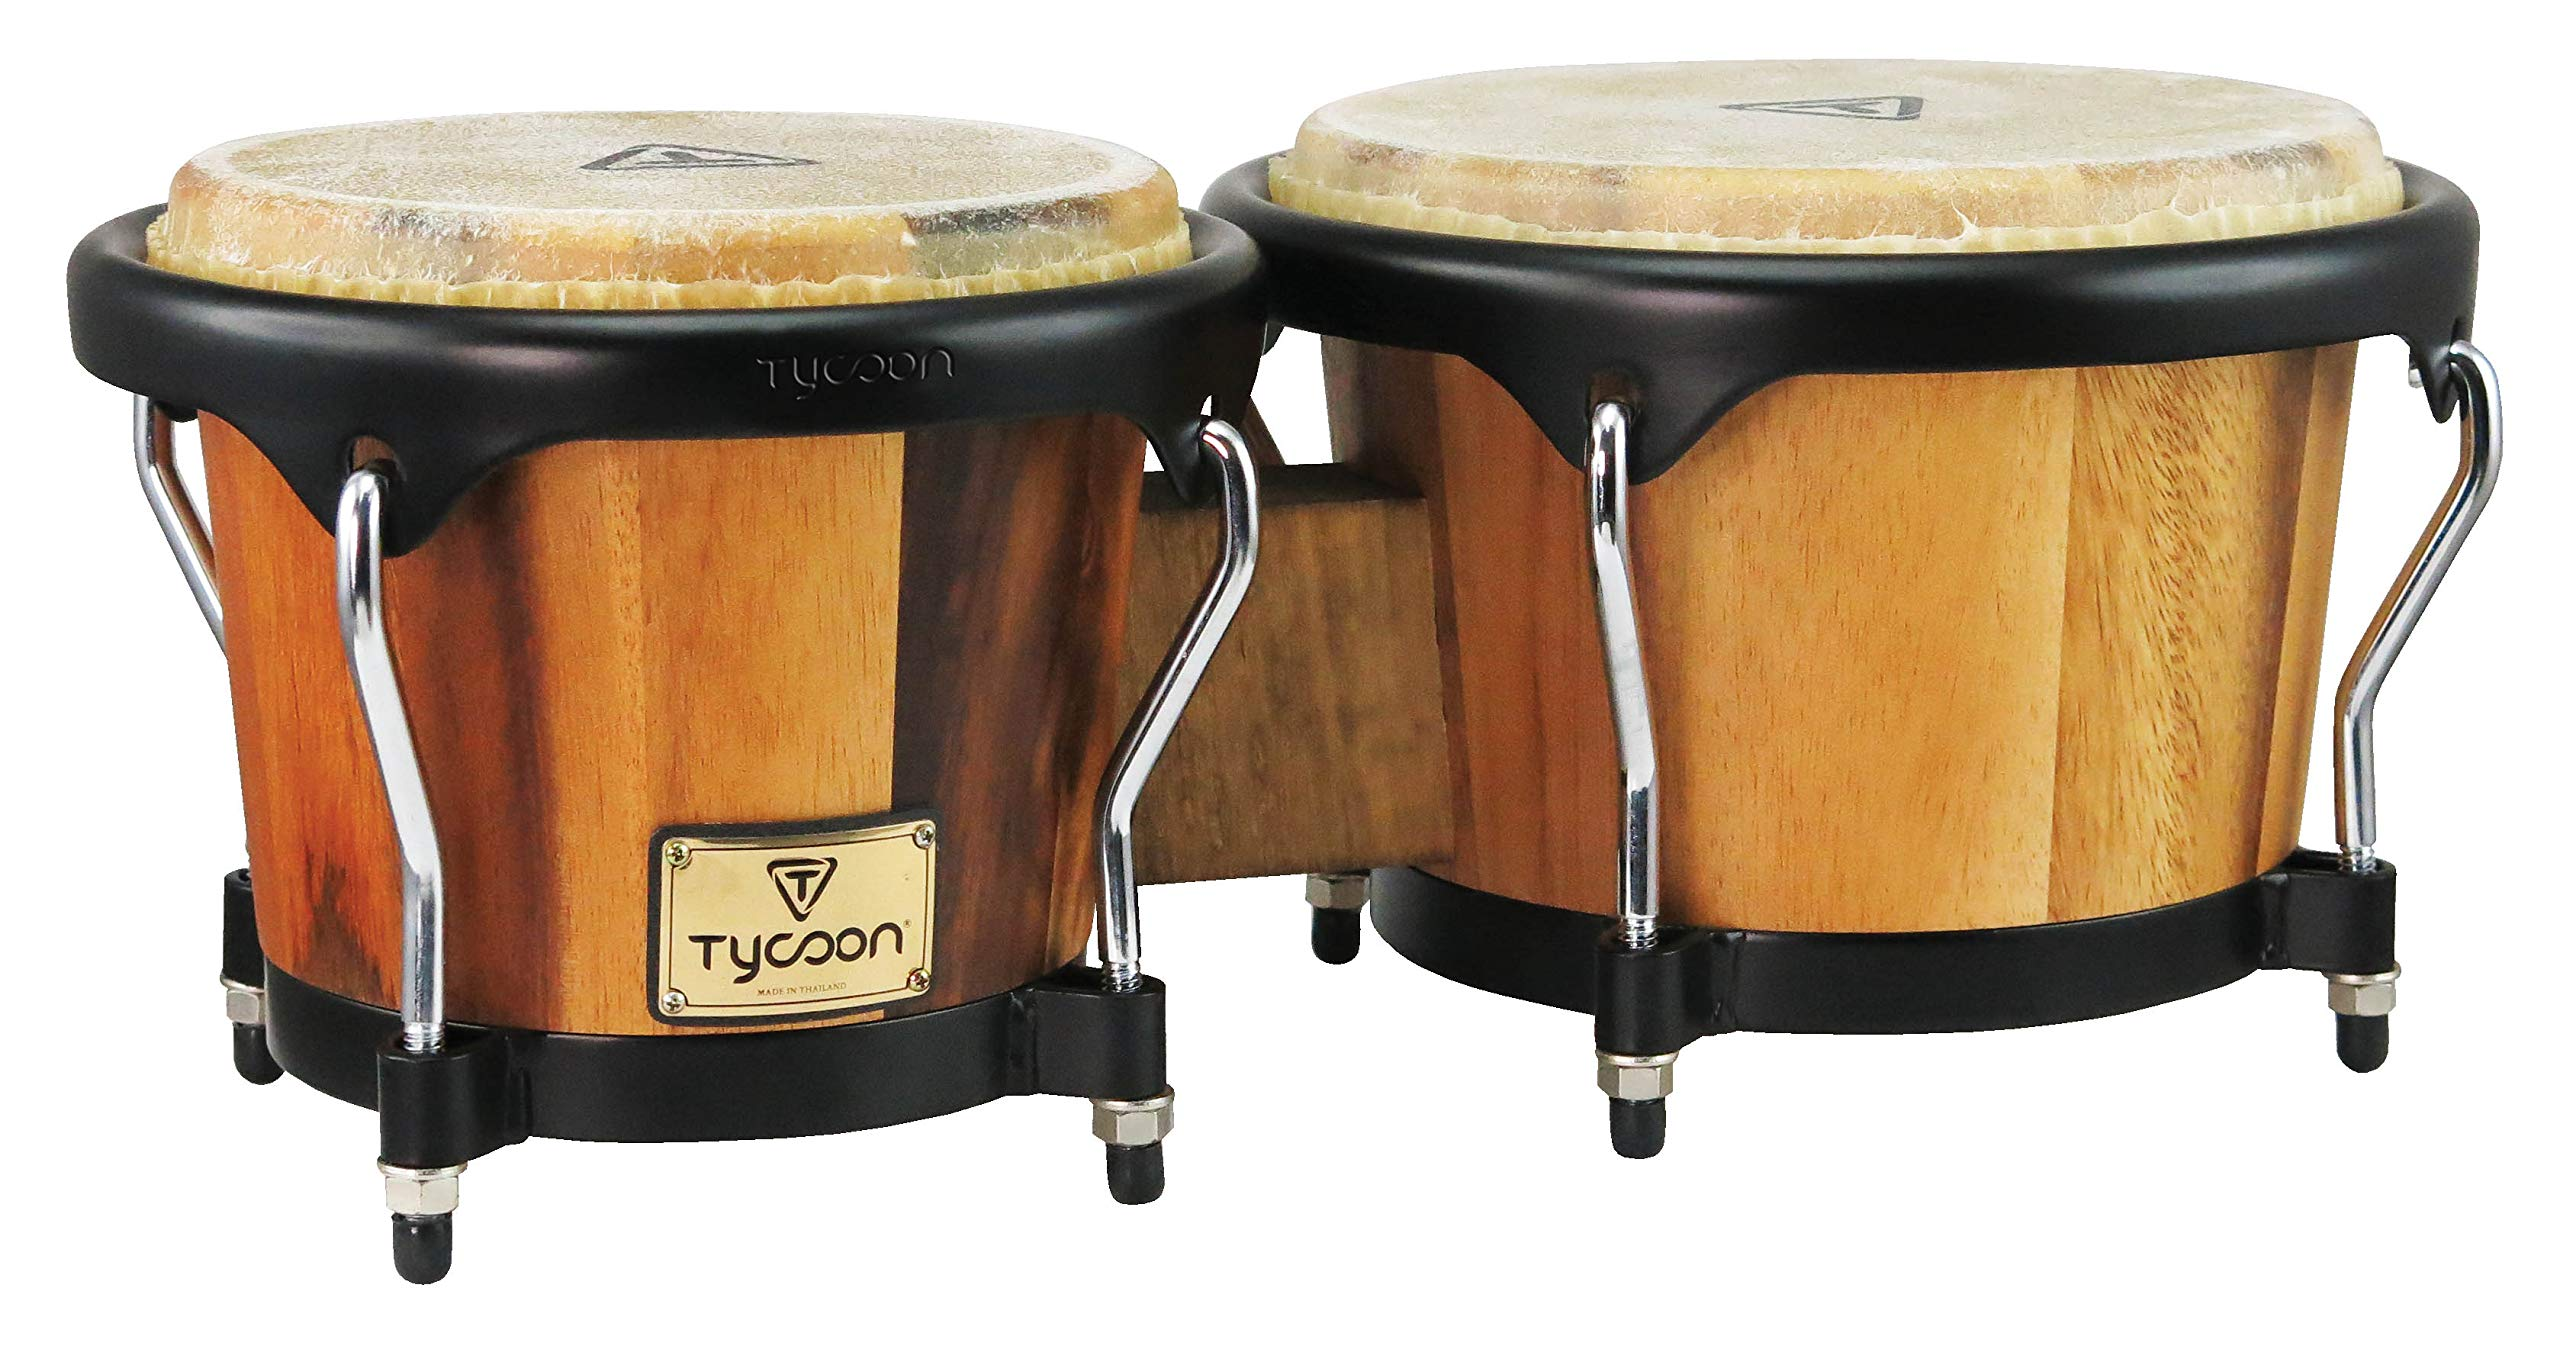 Tycoon TB-80 B JM Bongo Drum, Brown by Tycoon Percussion